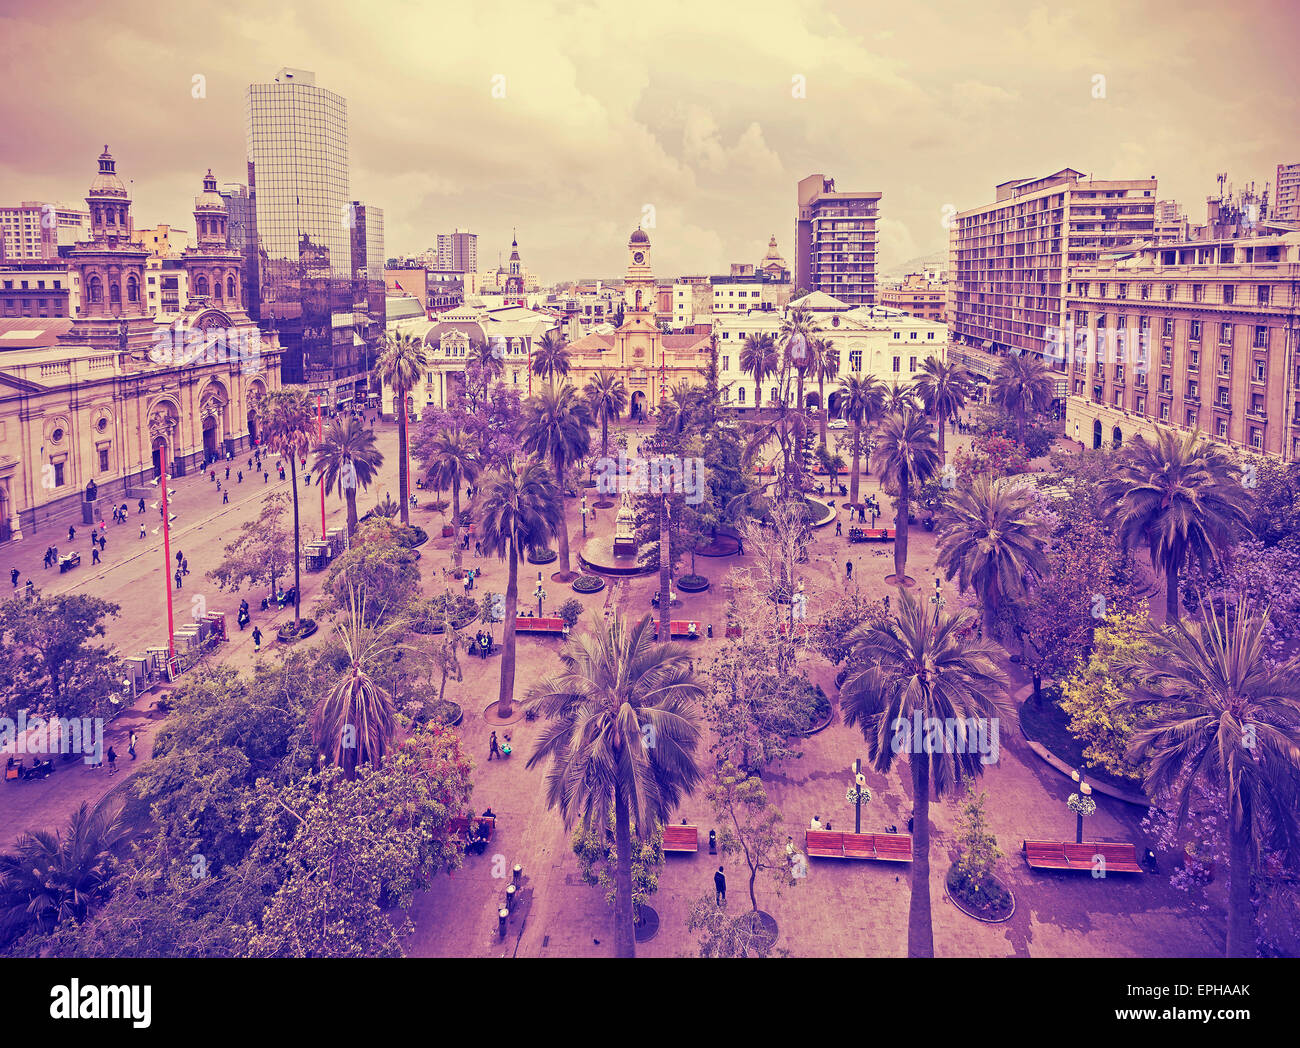 Vintage stylized photo of Santiago de Chile downtown, Plaza de Armas where modern skyscrapers mix with historic - Stock Image